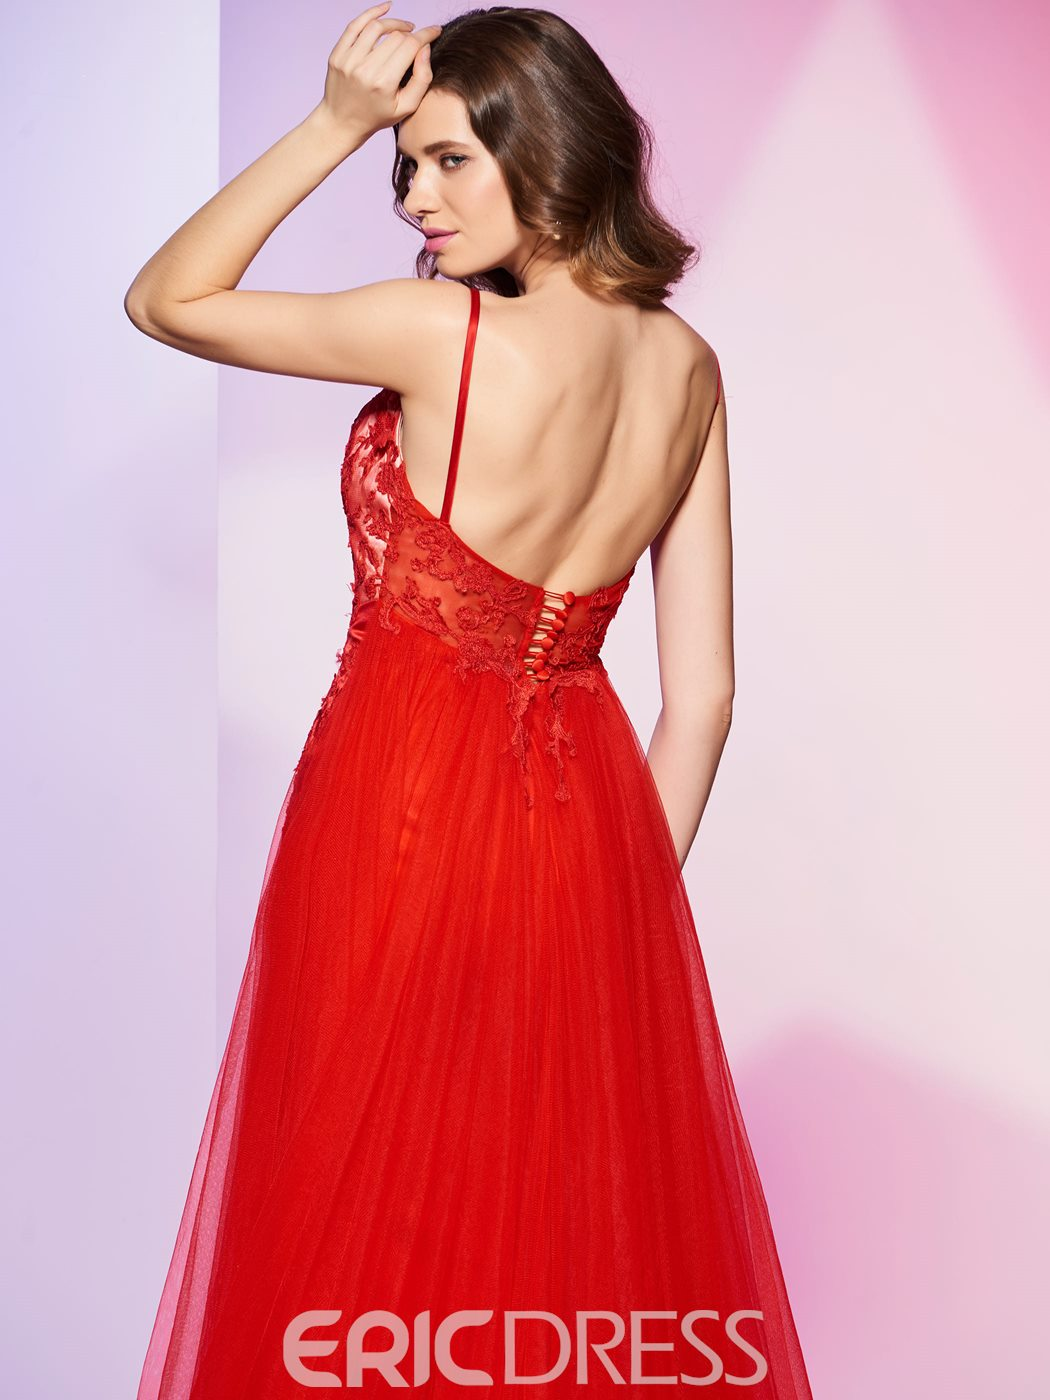 Ericdress Fancy Sheath Spaghetti Straps Lace Applique Backless Prom Dress